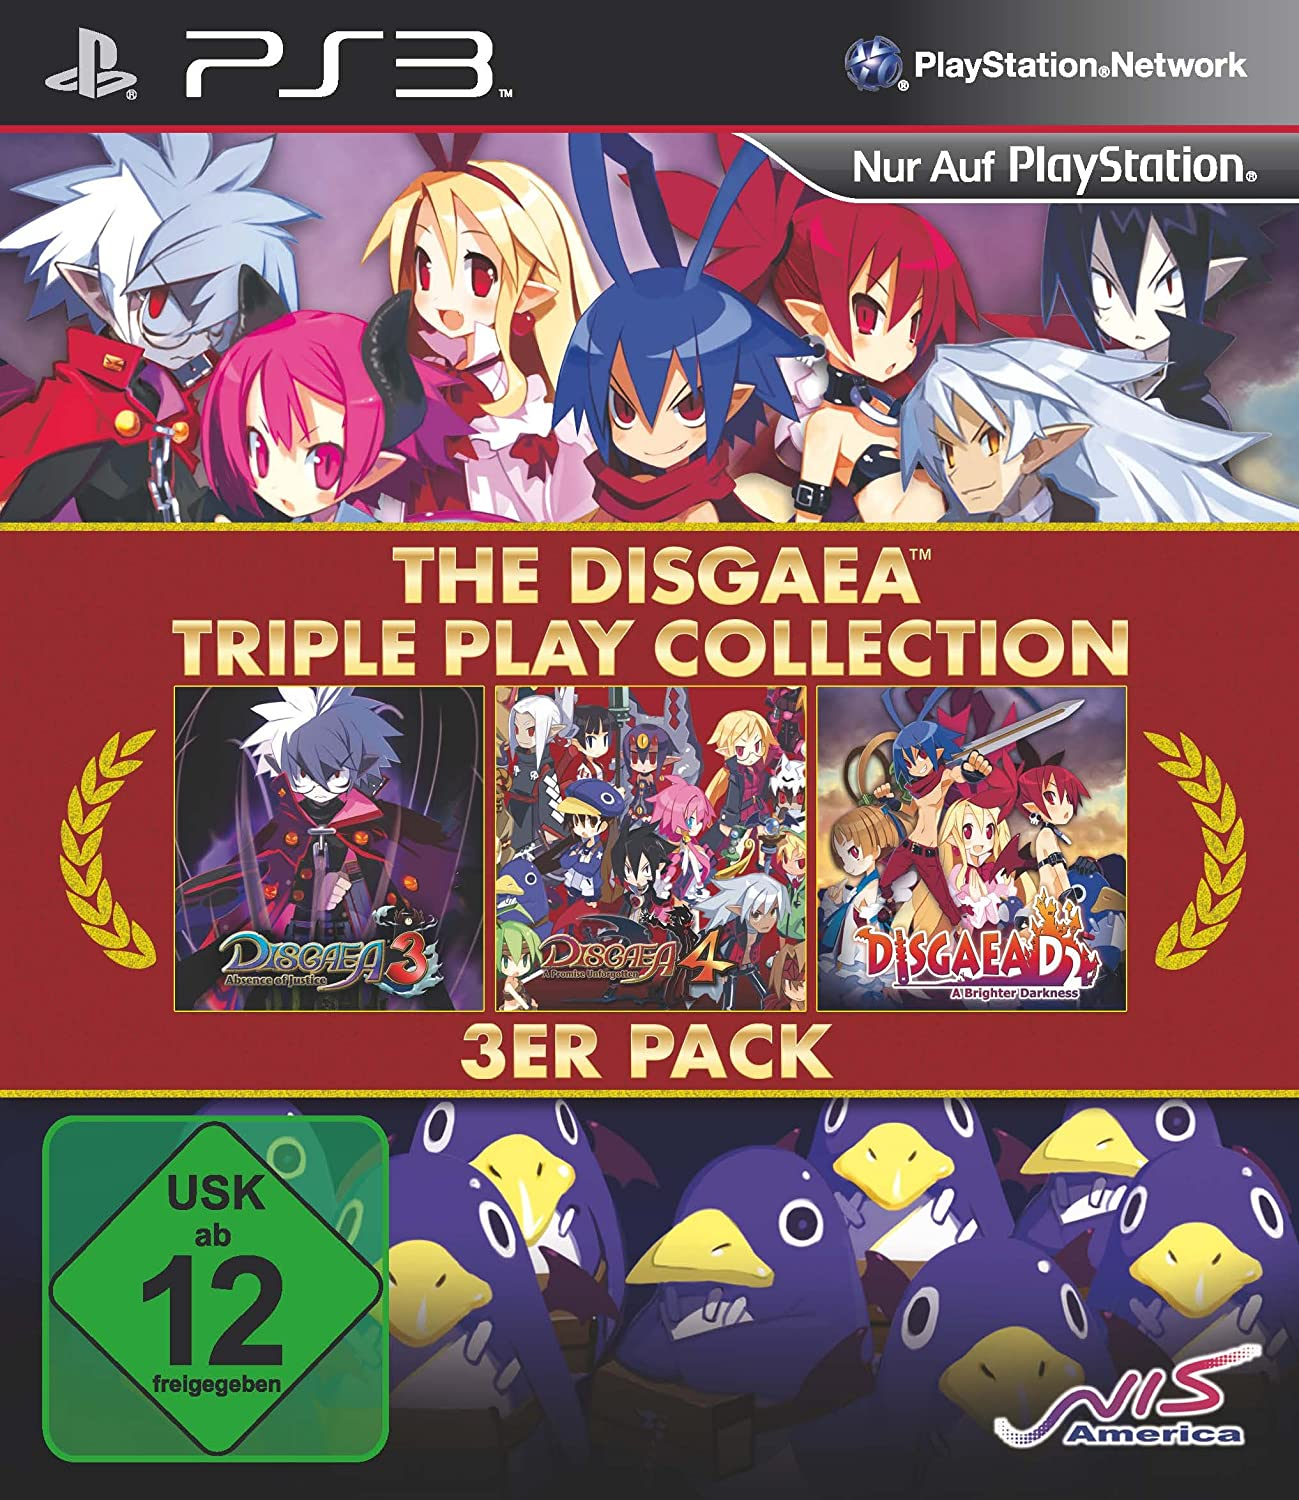 Disgaea Triple Play Collection